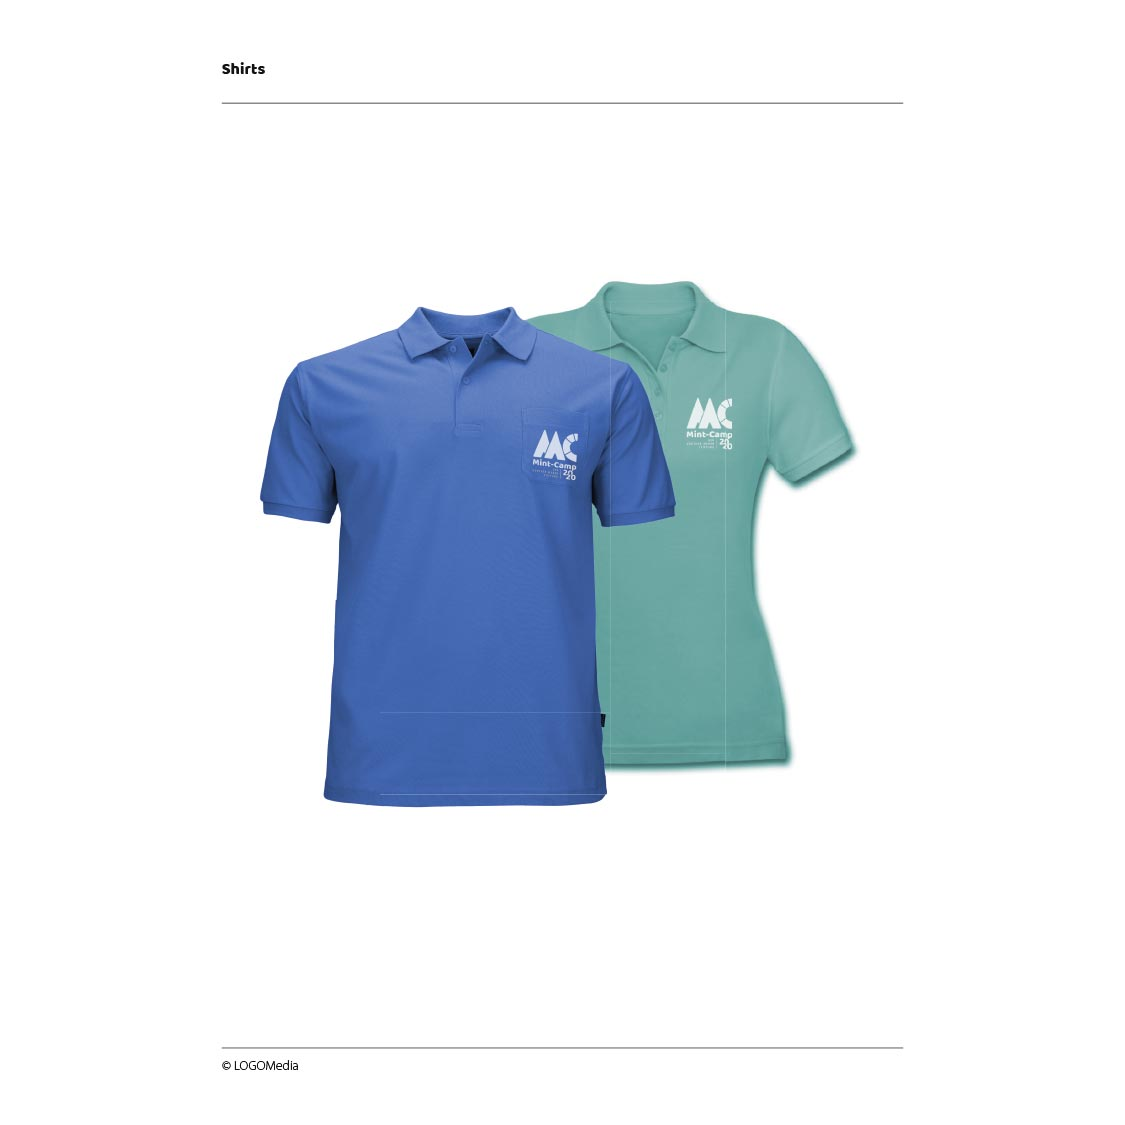 06 logo mint camp 2020 polo shirts 1125px